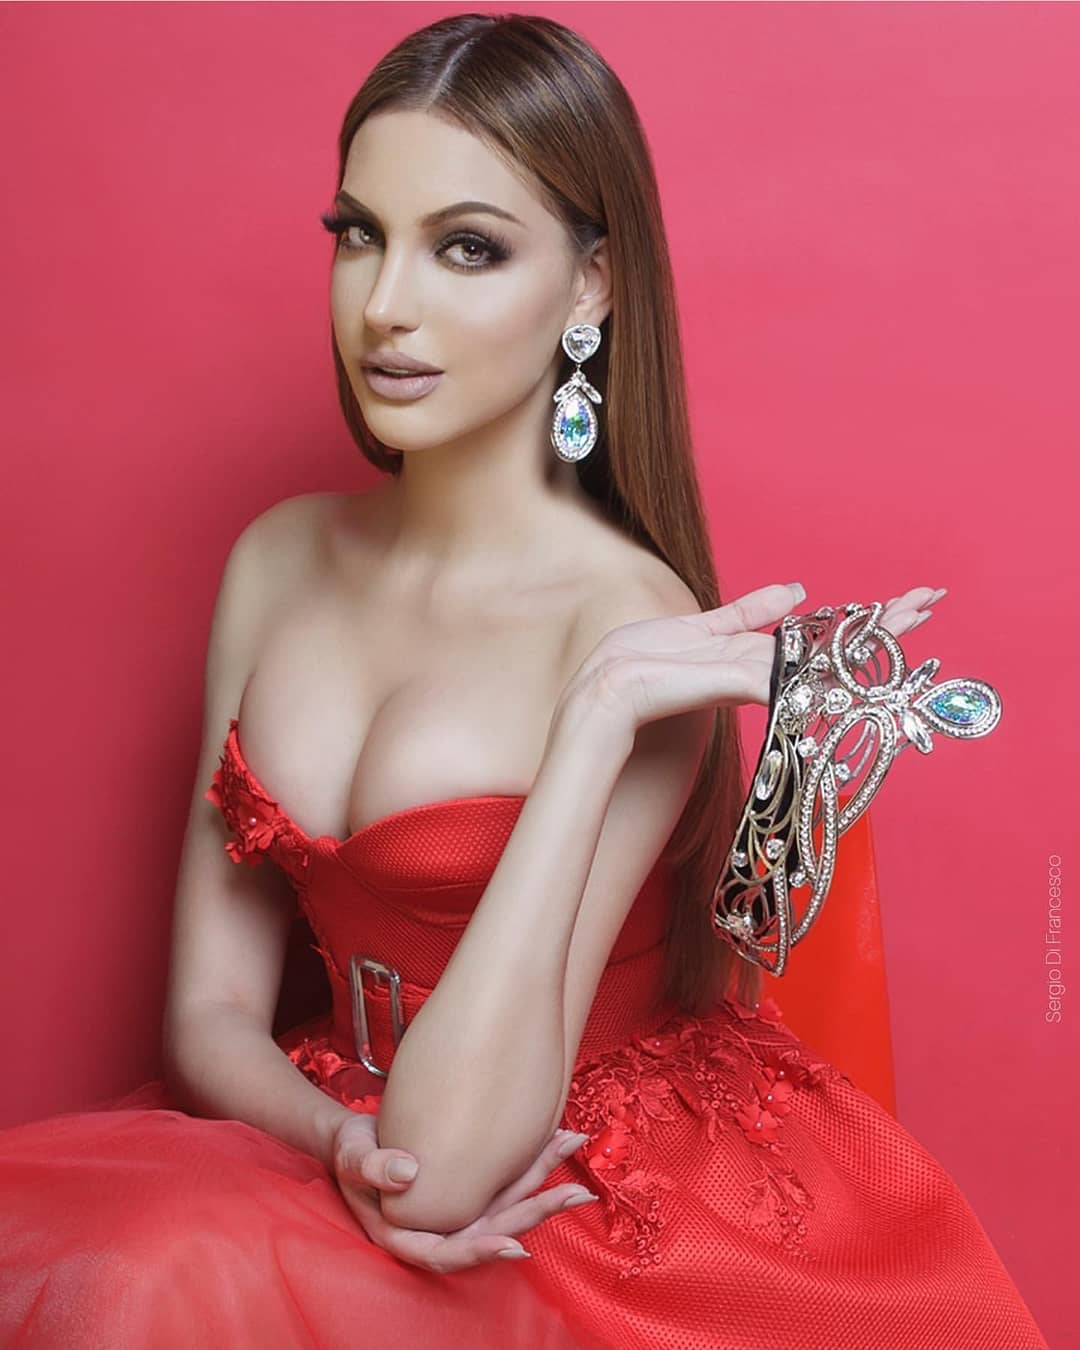 lourdes valentina figuera, miss grand international 2019. 68886910